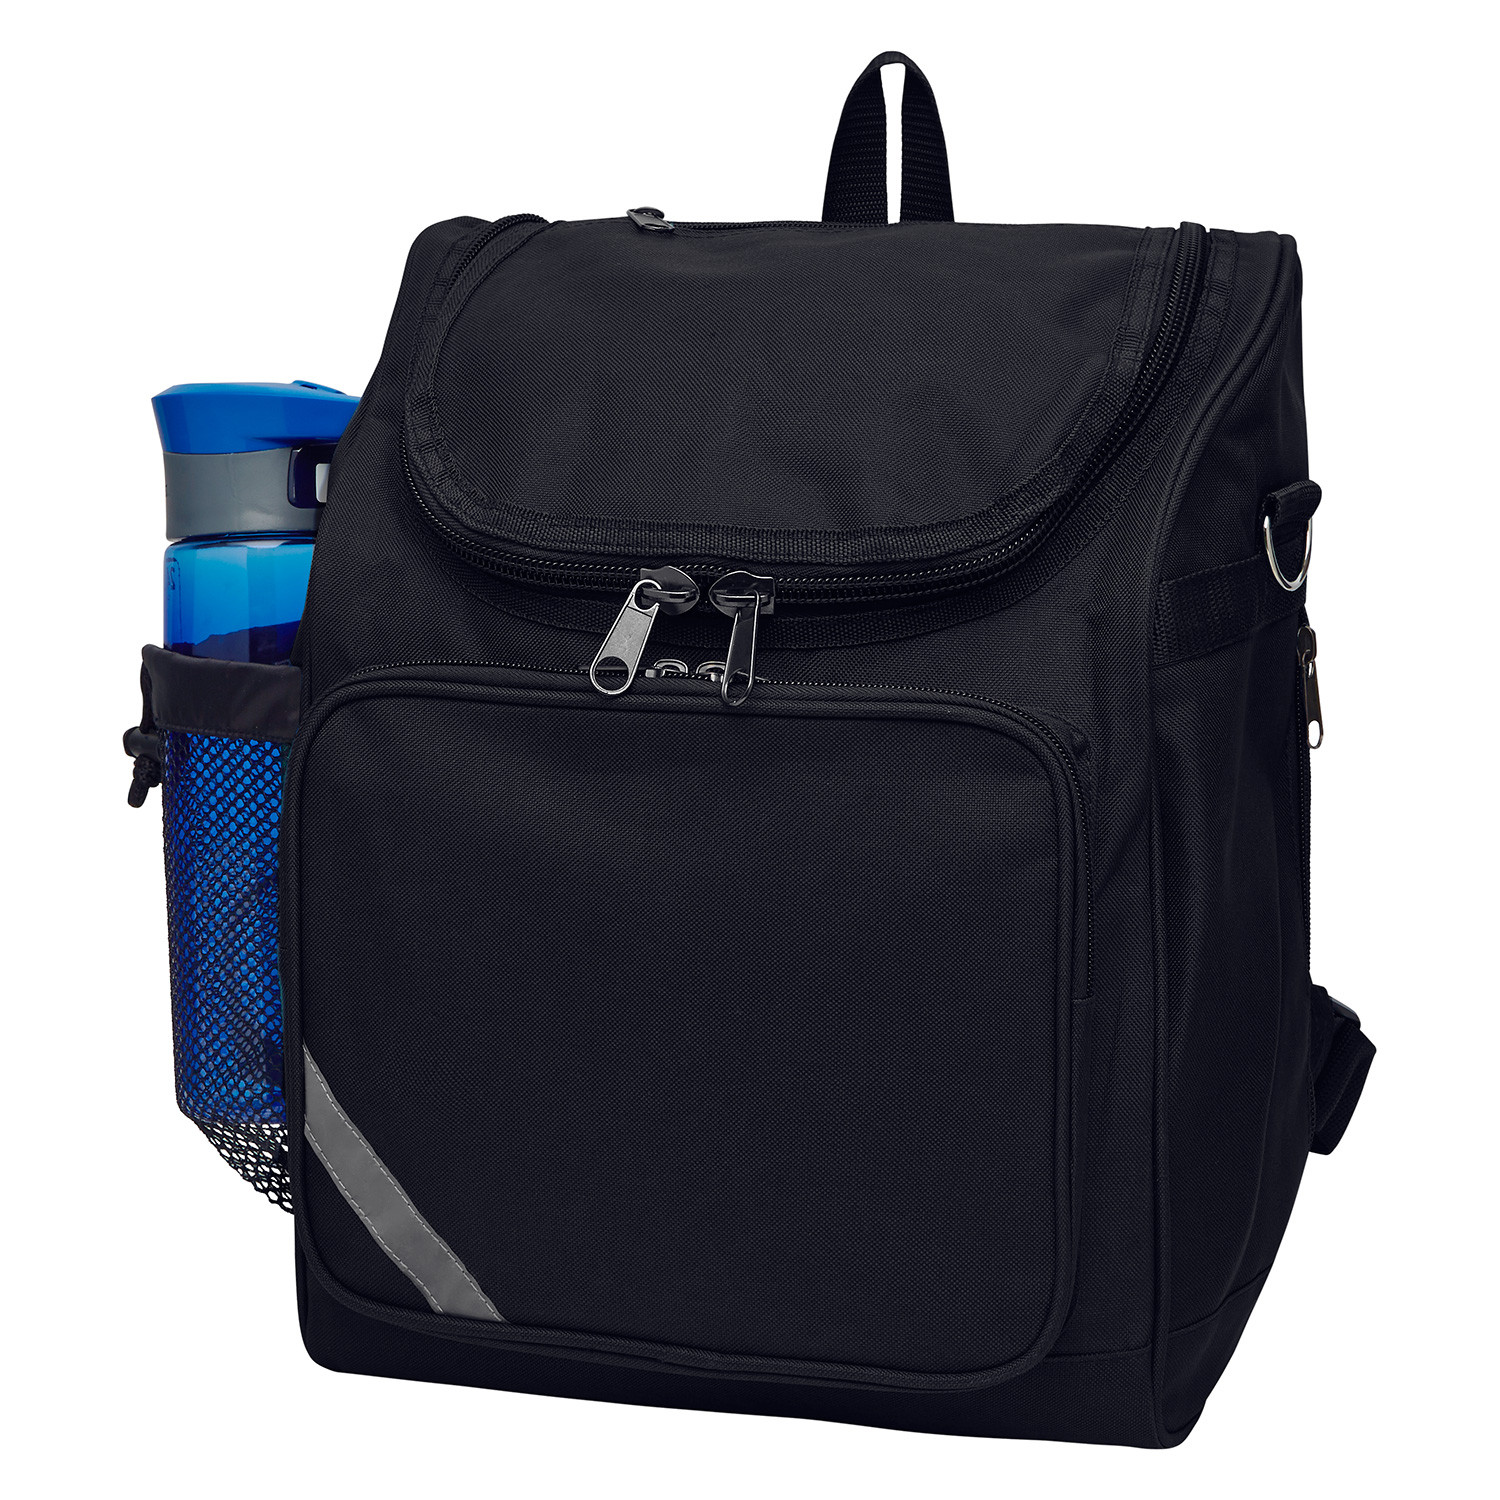 Kennedy Back Pack